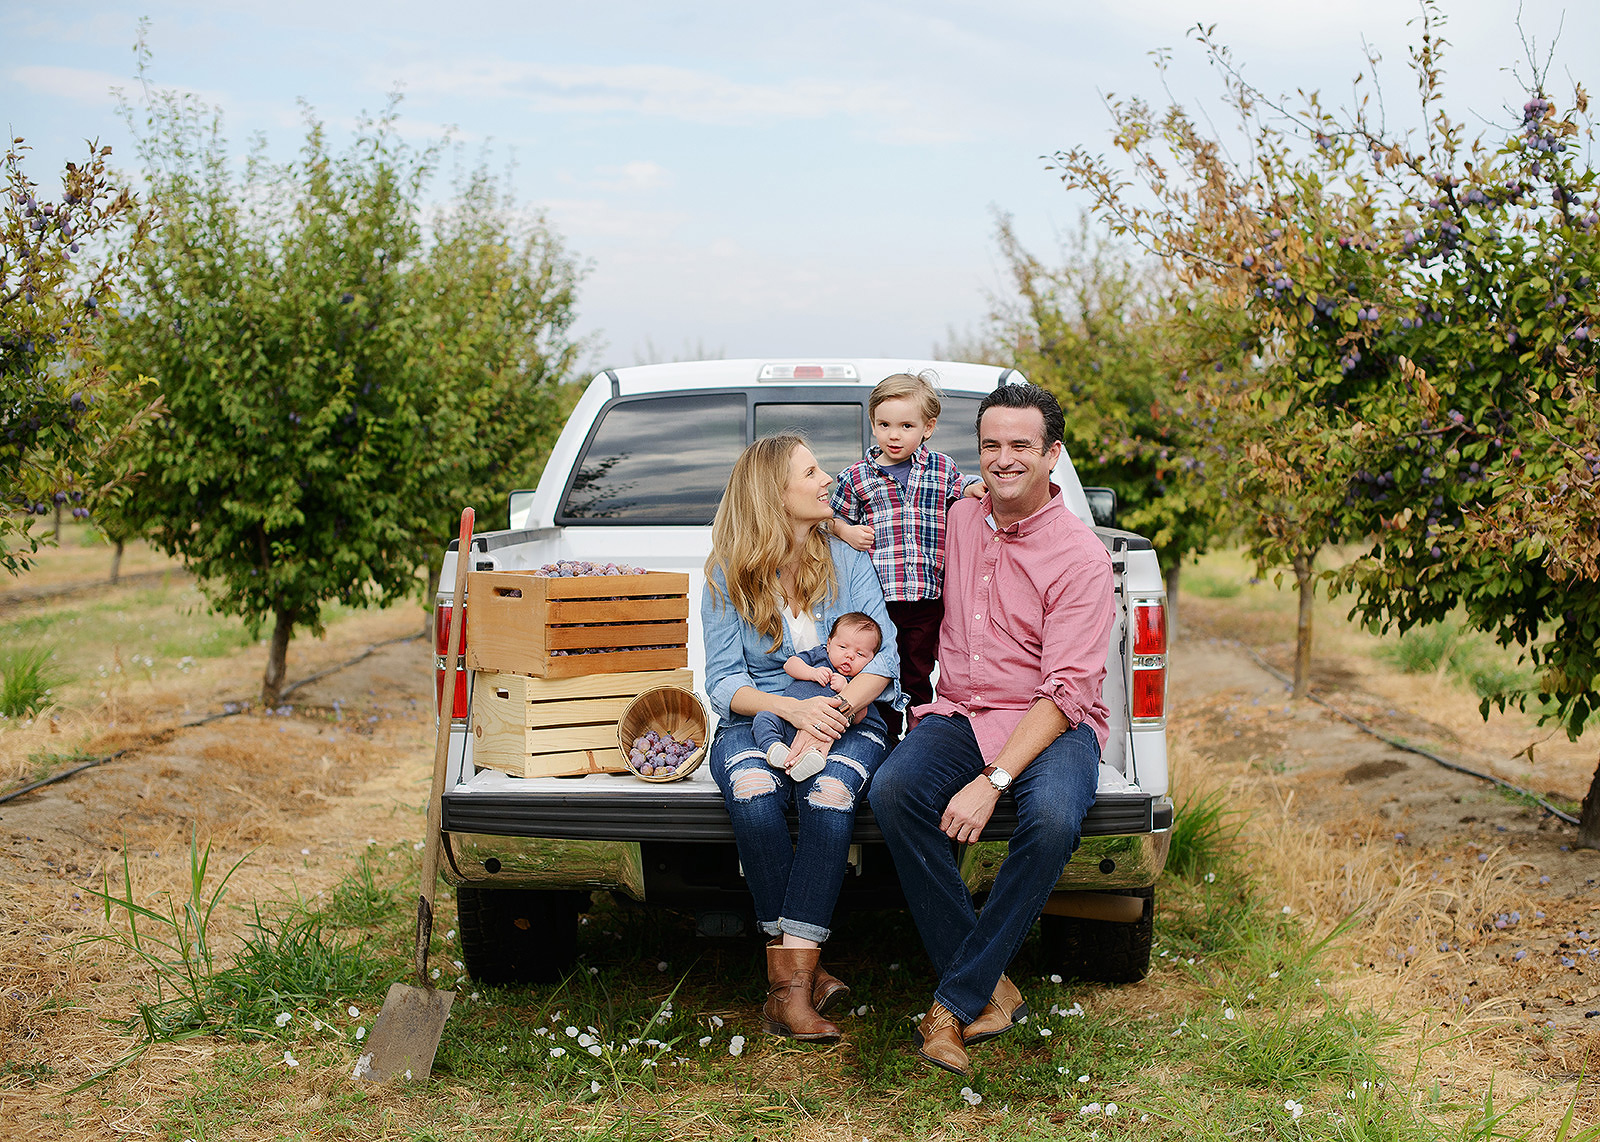 Family in the Back of a Truck on a Prune Farm